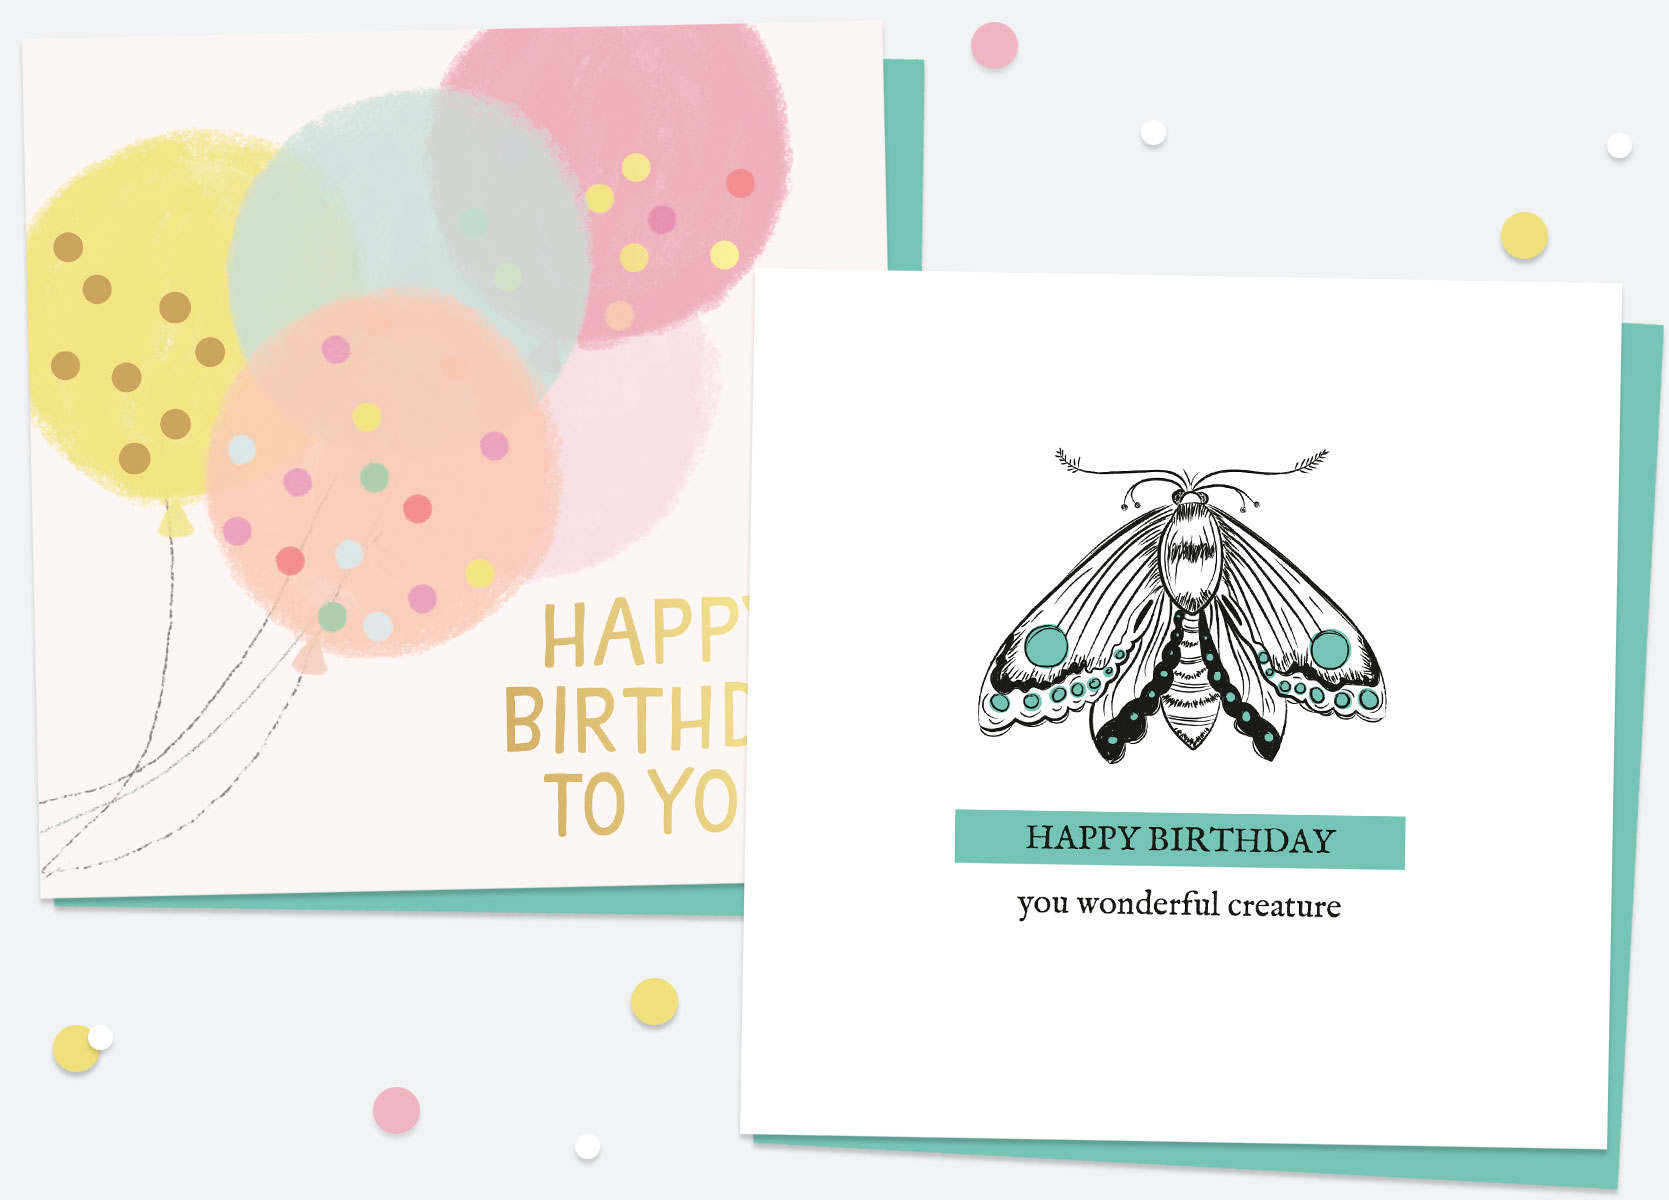 Birthday Cards For Her - General